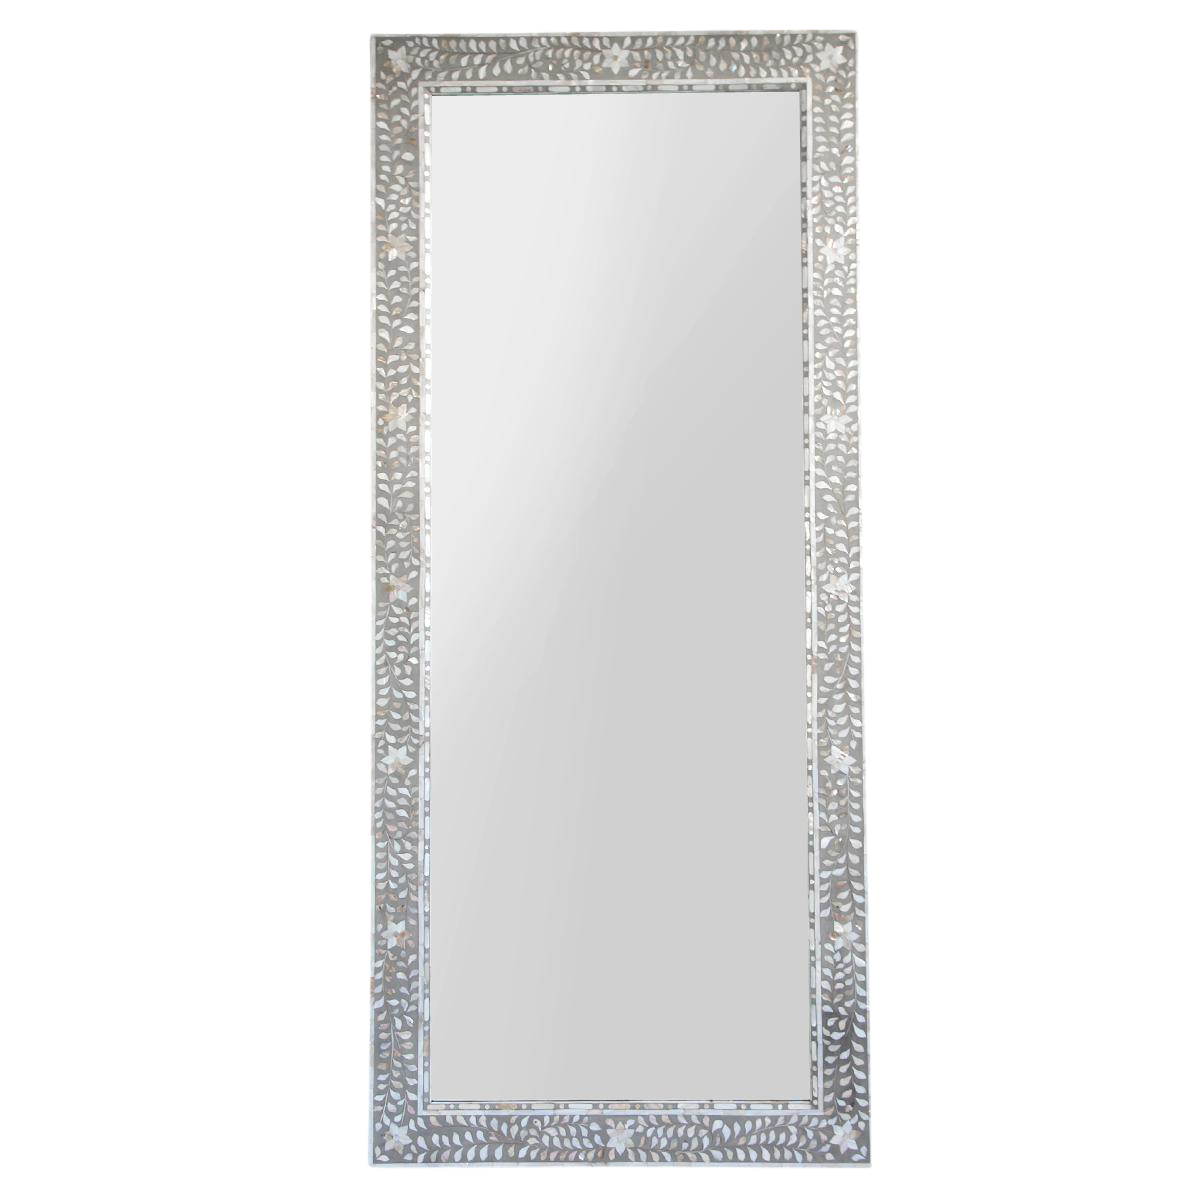 Inlaid Mother Of Pearl Full Length Mirror On Chairish Com Full Length Mirror With Lights Mirror Mother Of Pearl Mirror